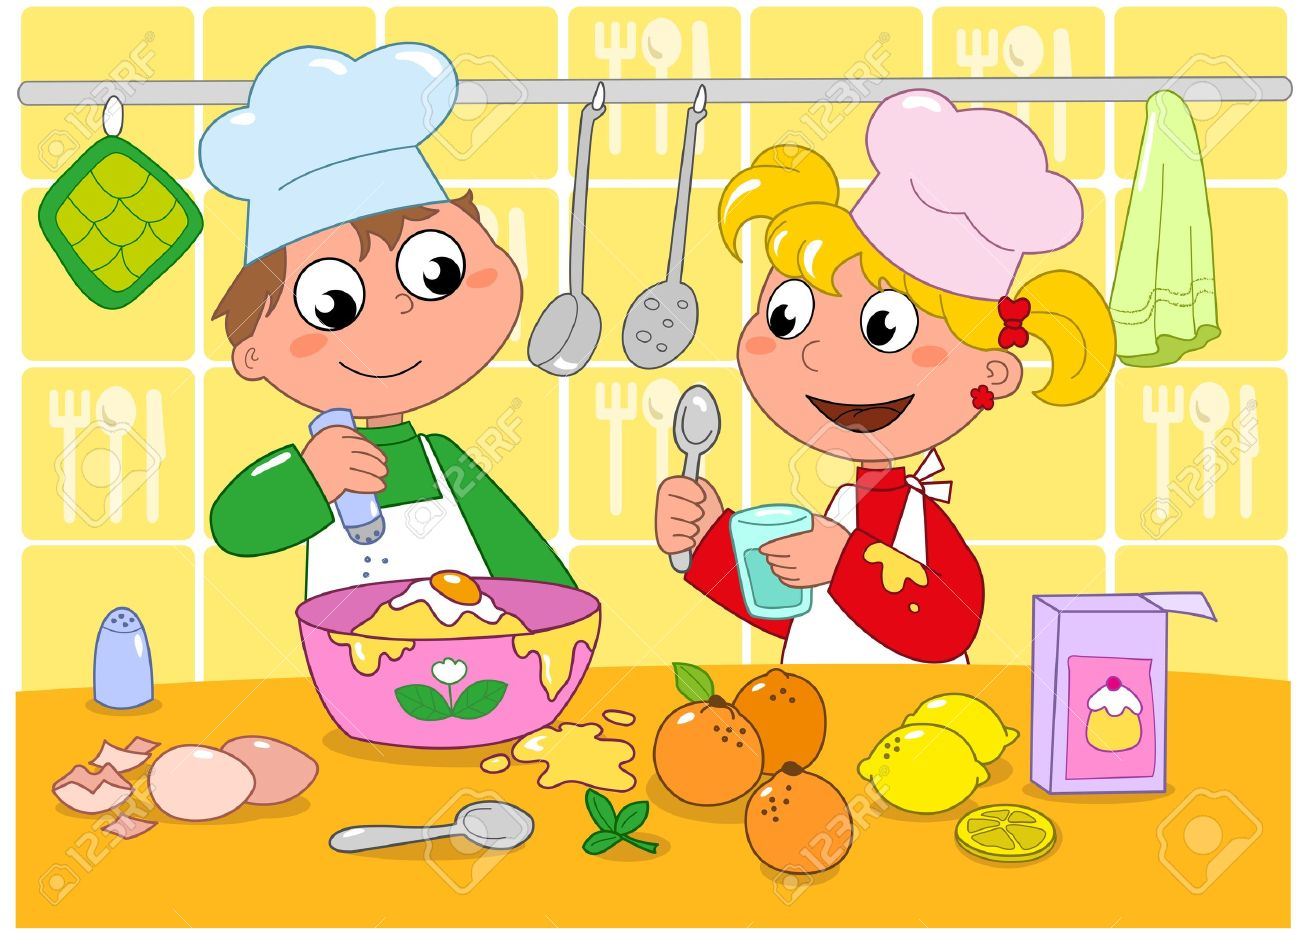 Boy and girl cooking in a kitchen full of ingredients  Cartoon illustration for children Stock Vector - 13585378